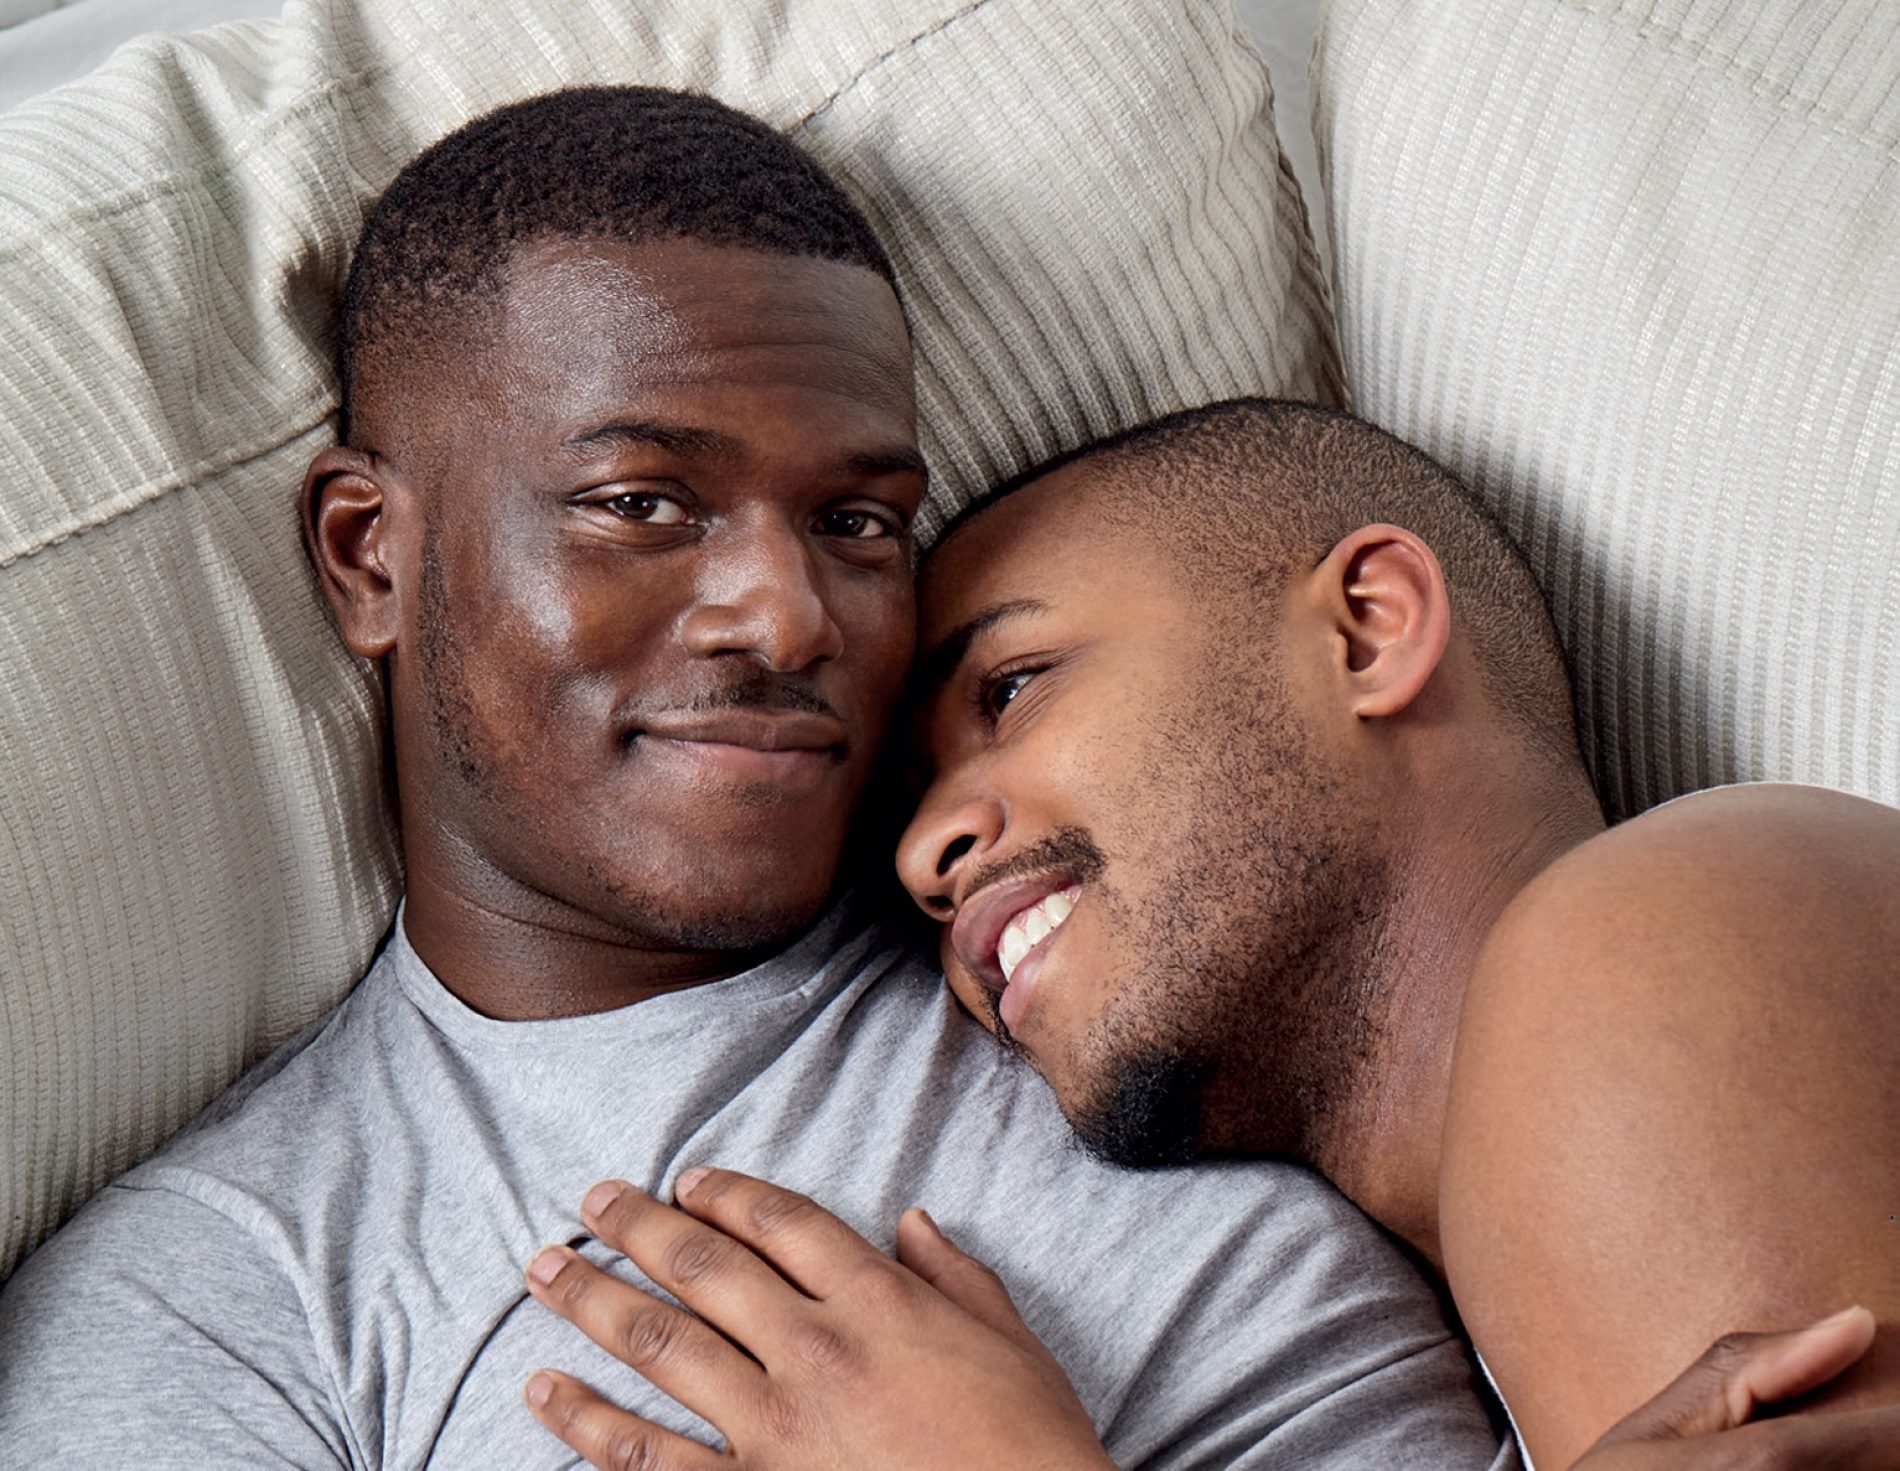 """What's The Weirdest, Wildest Thing You've Done With A Hookup?"" Gay guys are talking"